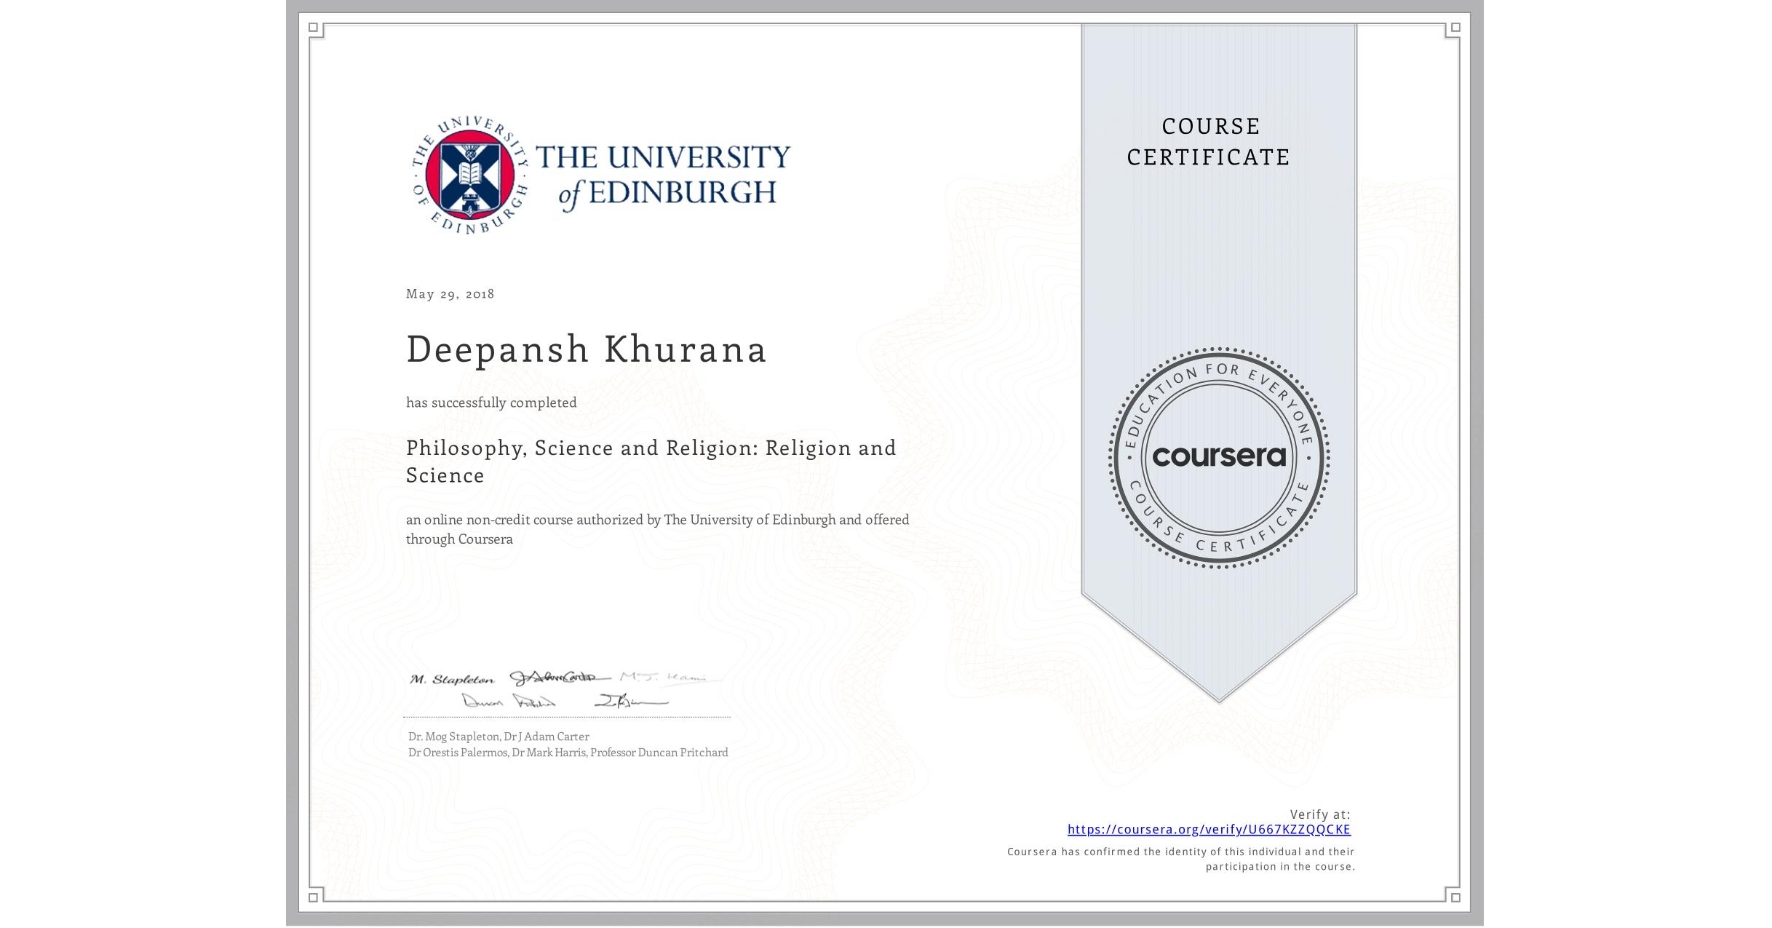 View certificate for Deepansh Khurana, Philosophy, Science and Religion: Religion and Science, an online non-credit course authorized by The University of Edinburgh and offered through Coursera